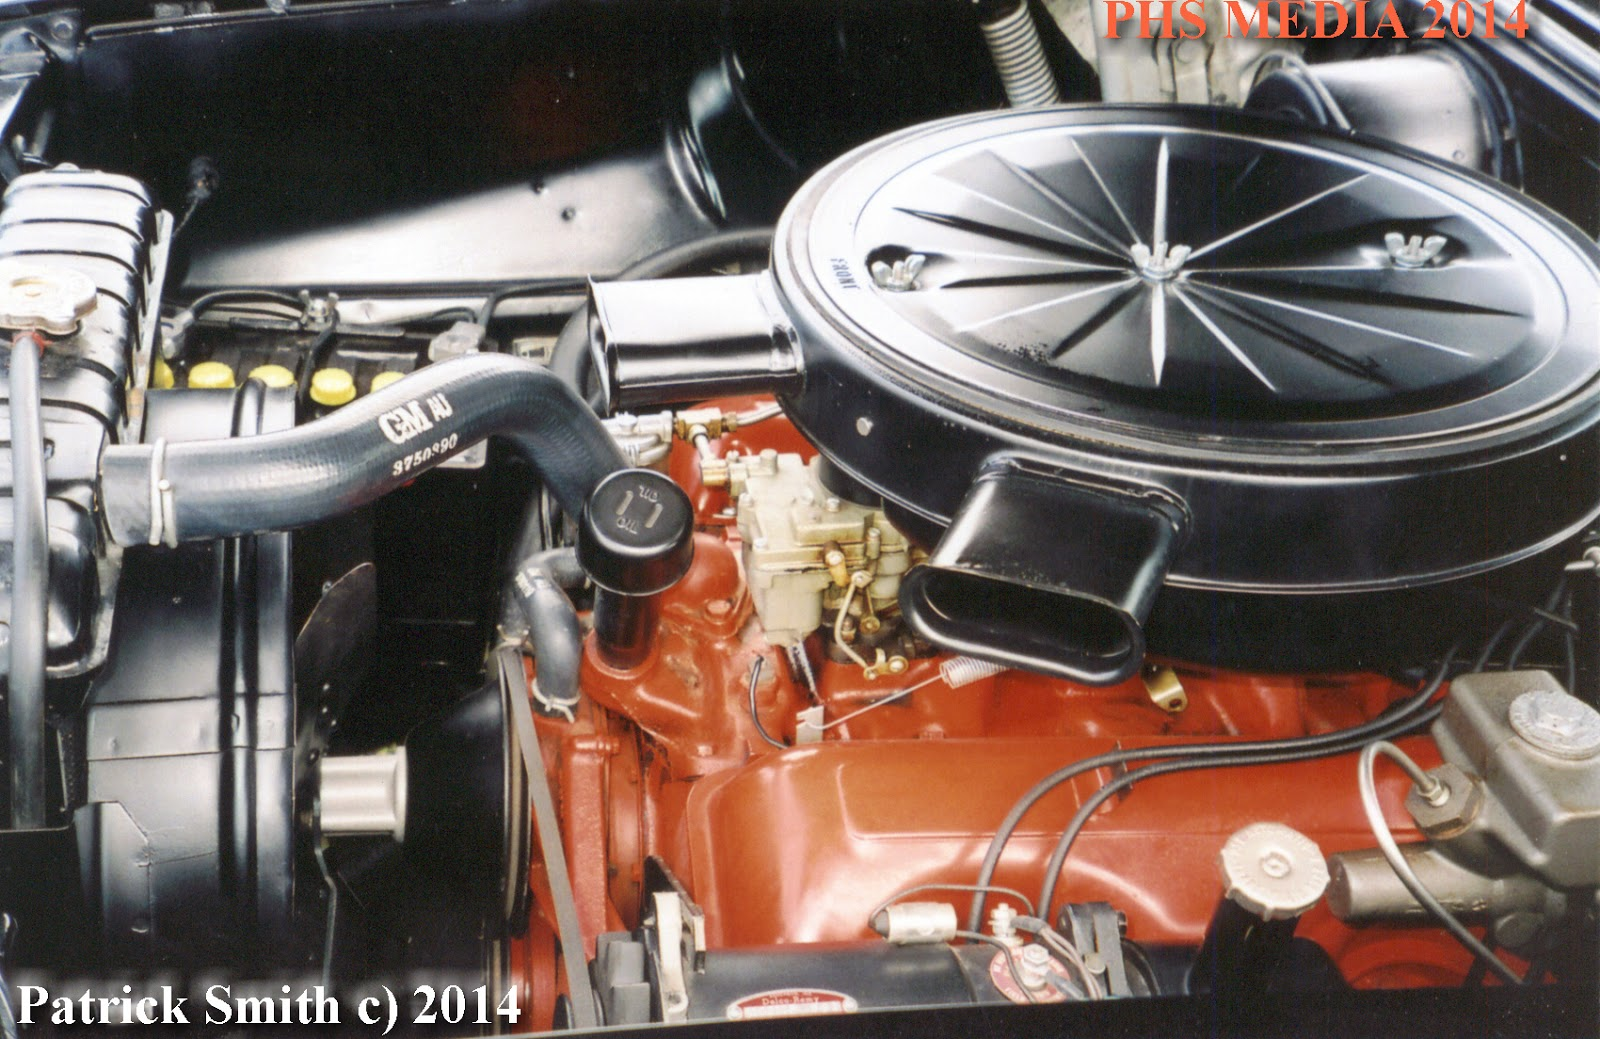 Rare Muscle Cars 1958 Pontiac Parisienne Convertible Tripower 4 Wiring Diagram The Tri Power 348 Engine Was Hottest Canadian Spec V8 Offered Fuel Injection Mill Us Only